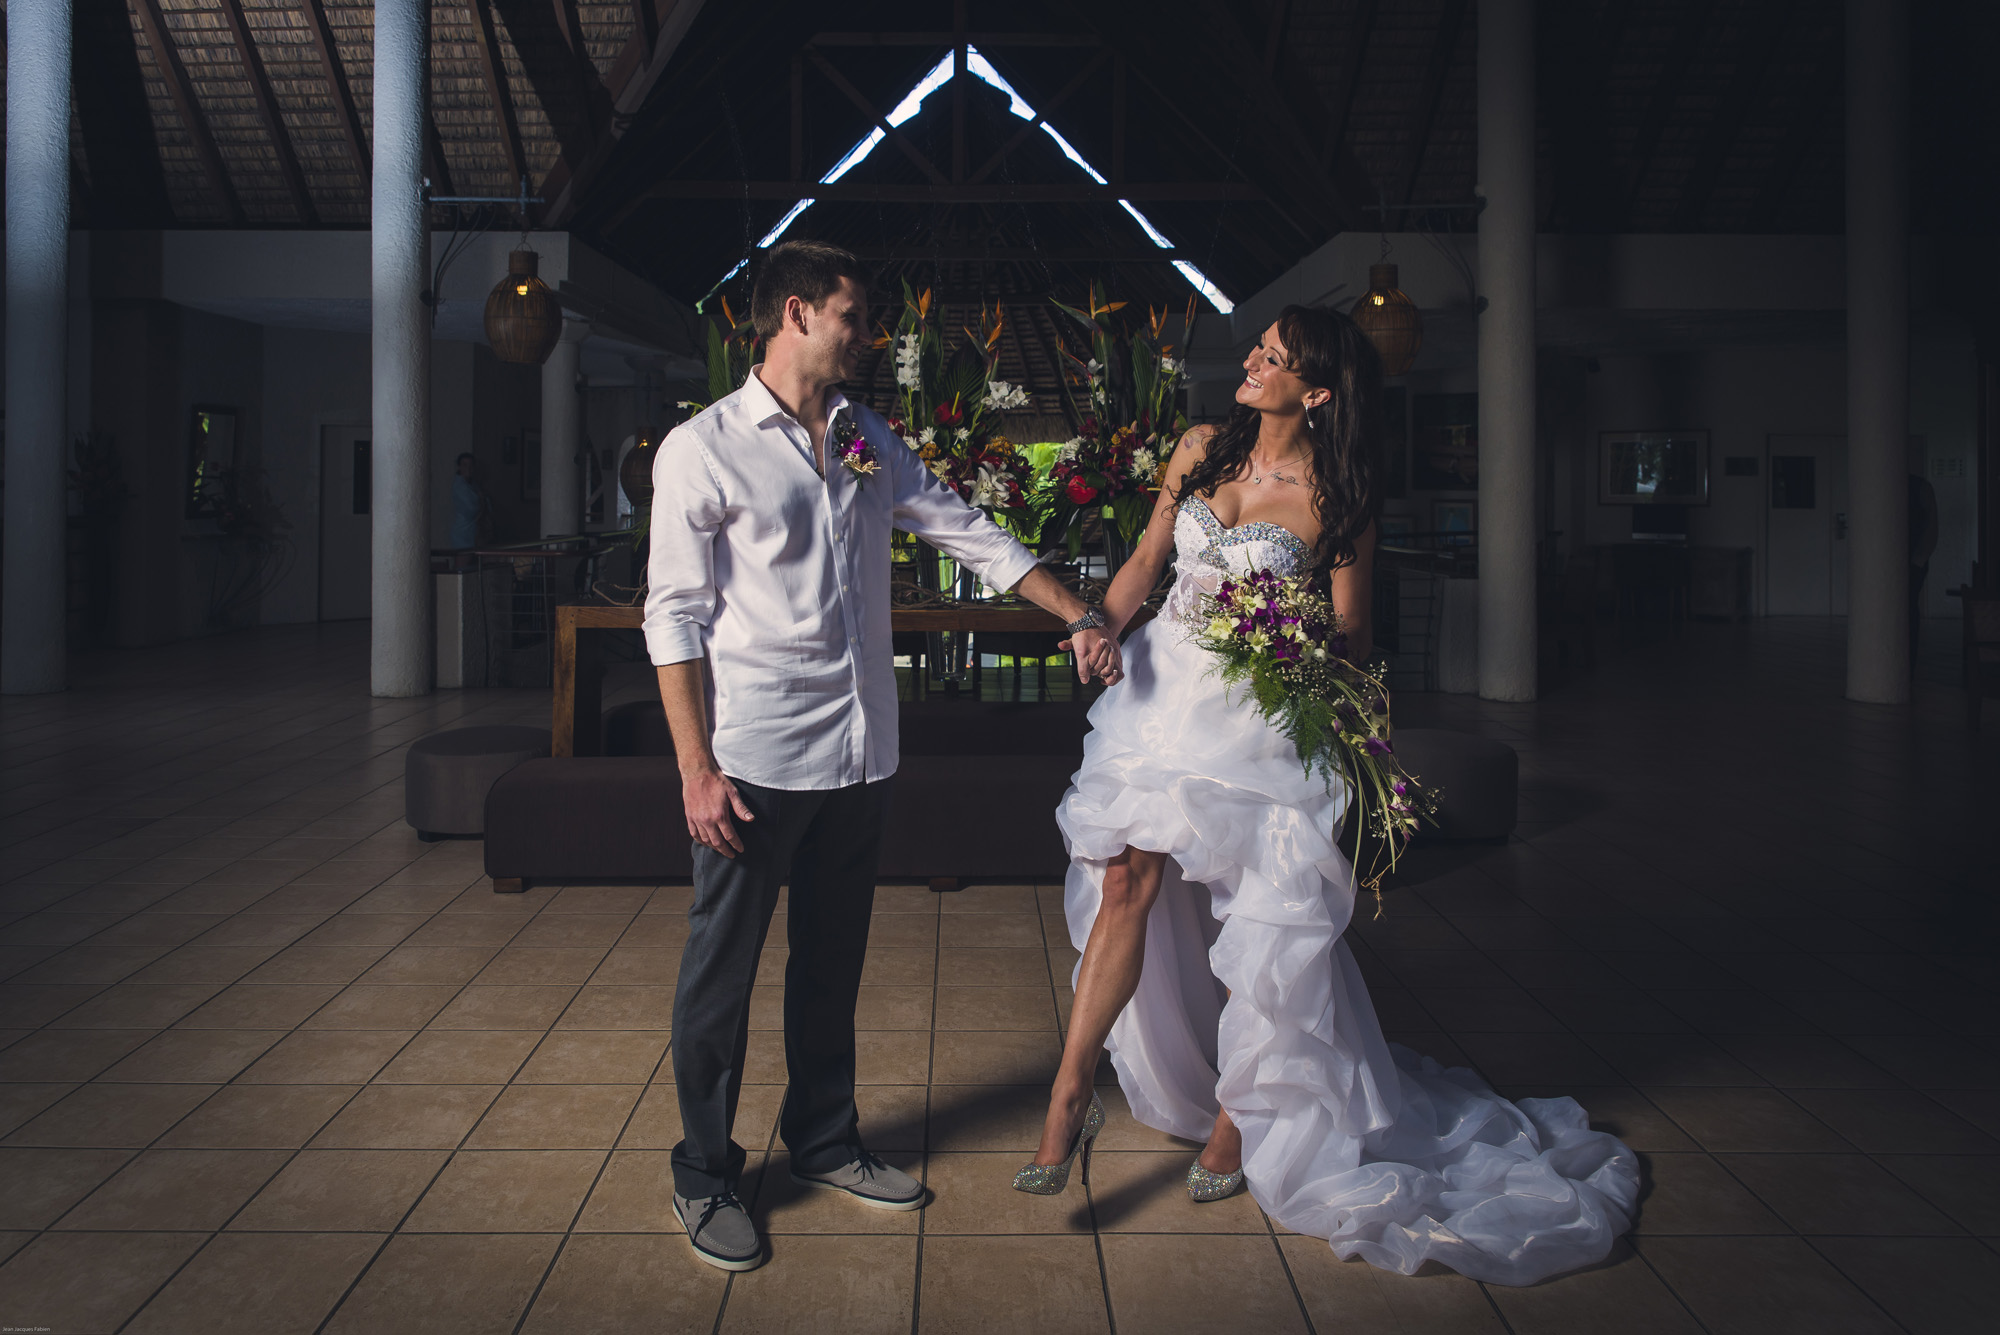 Justyna and Michael-11.jpg